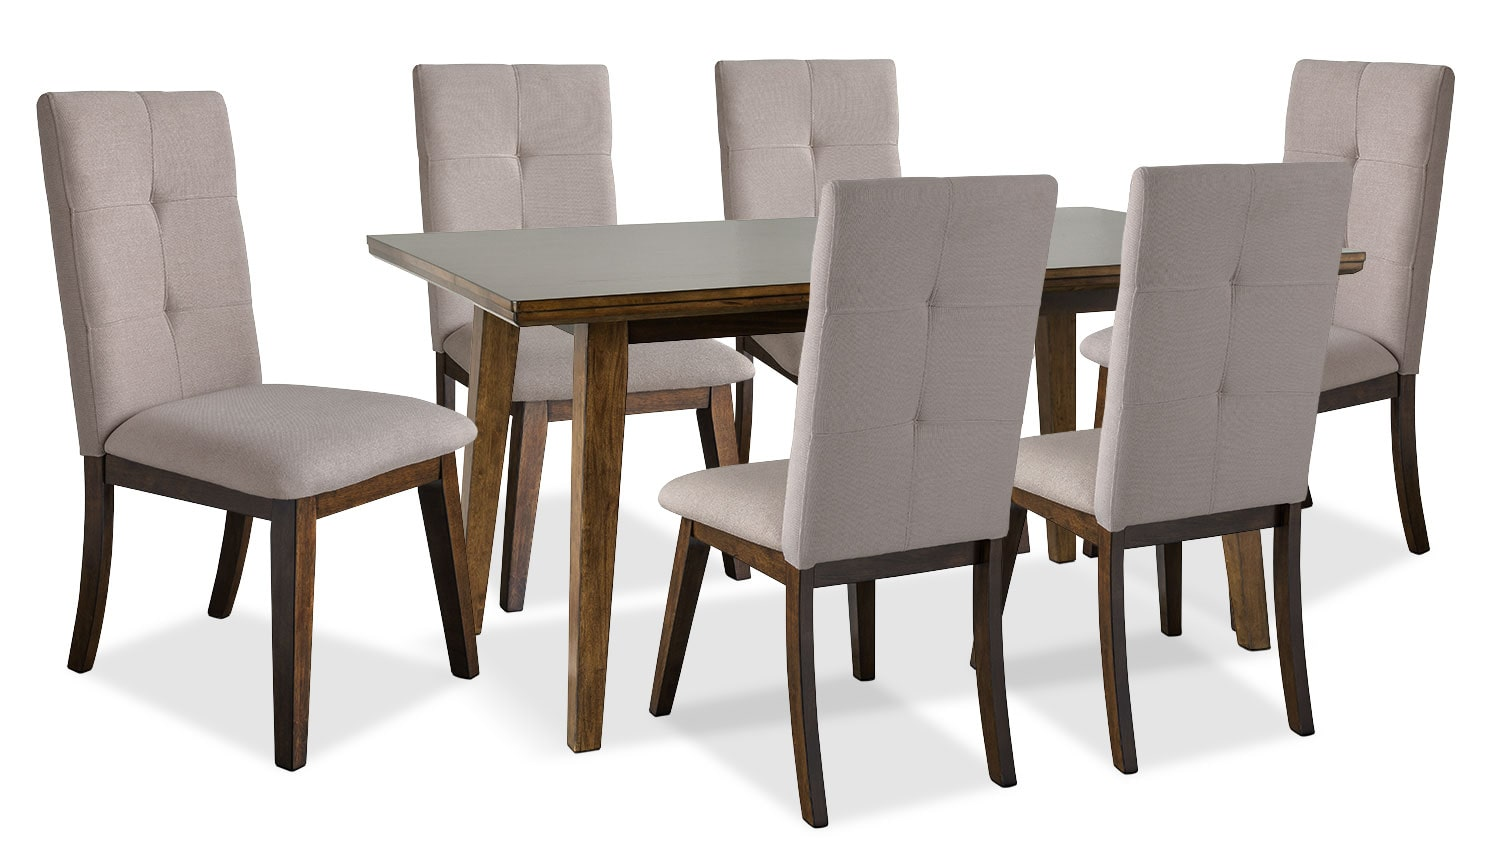 Chelsea 7-Piece Dining Table Package with Beige Chairs